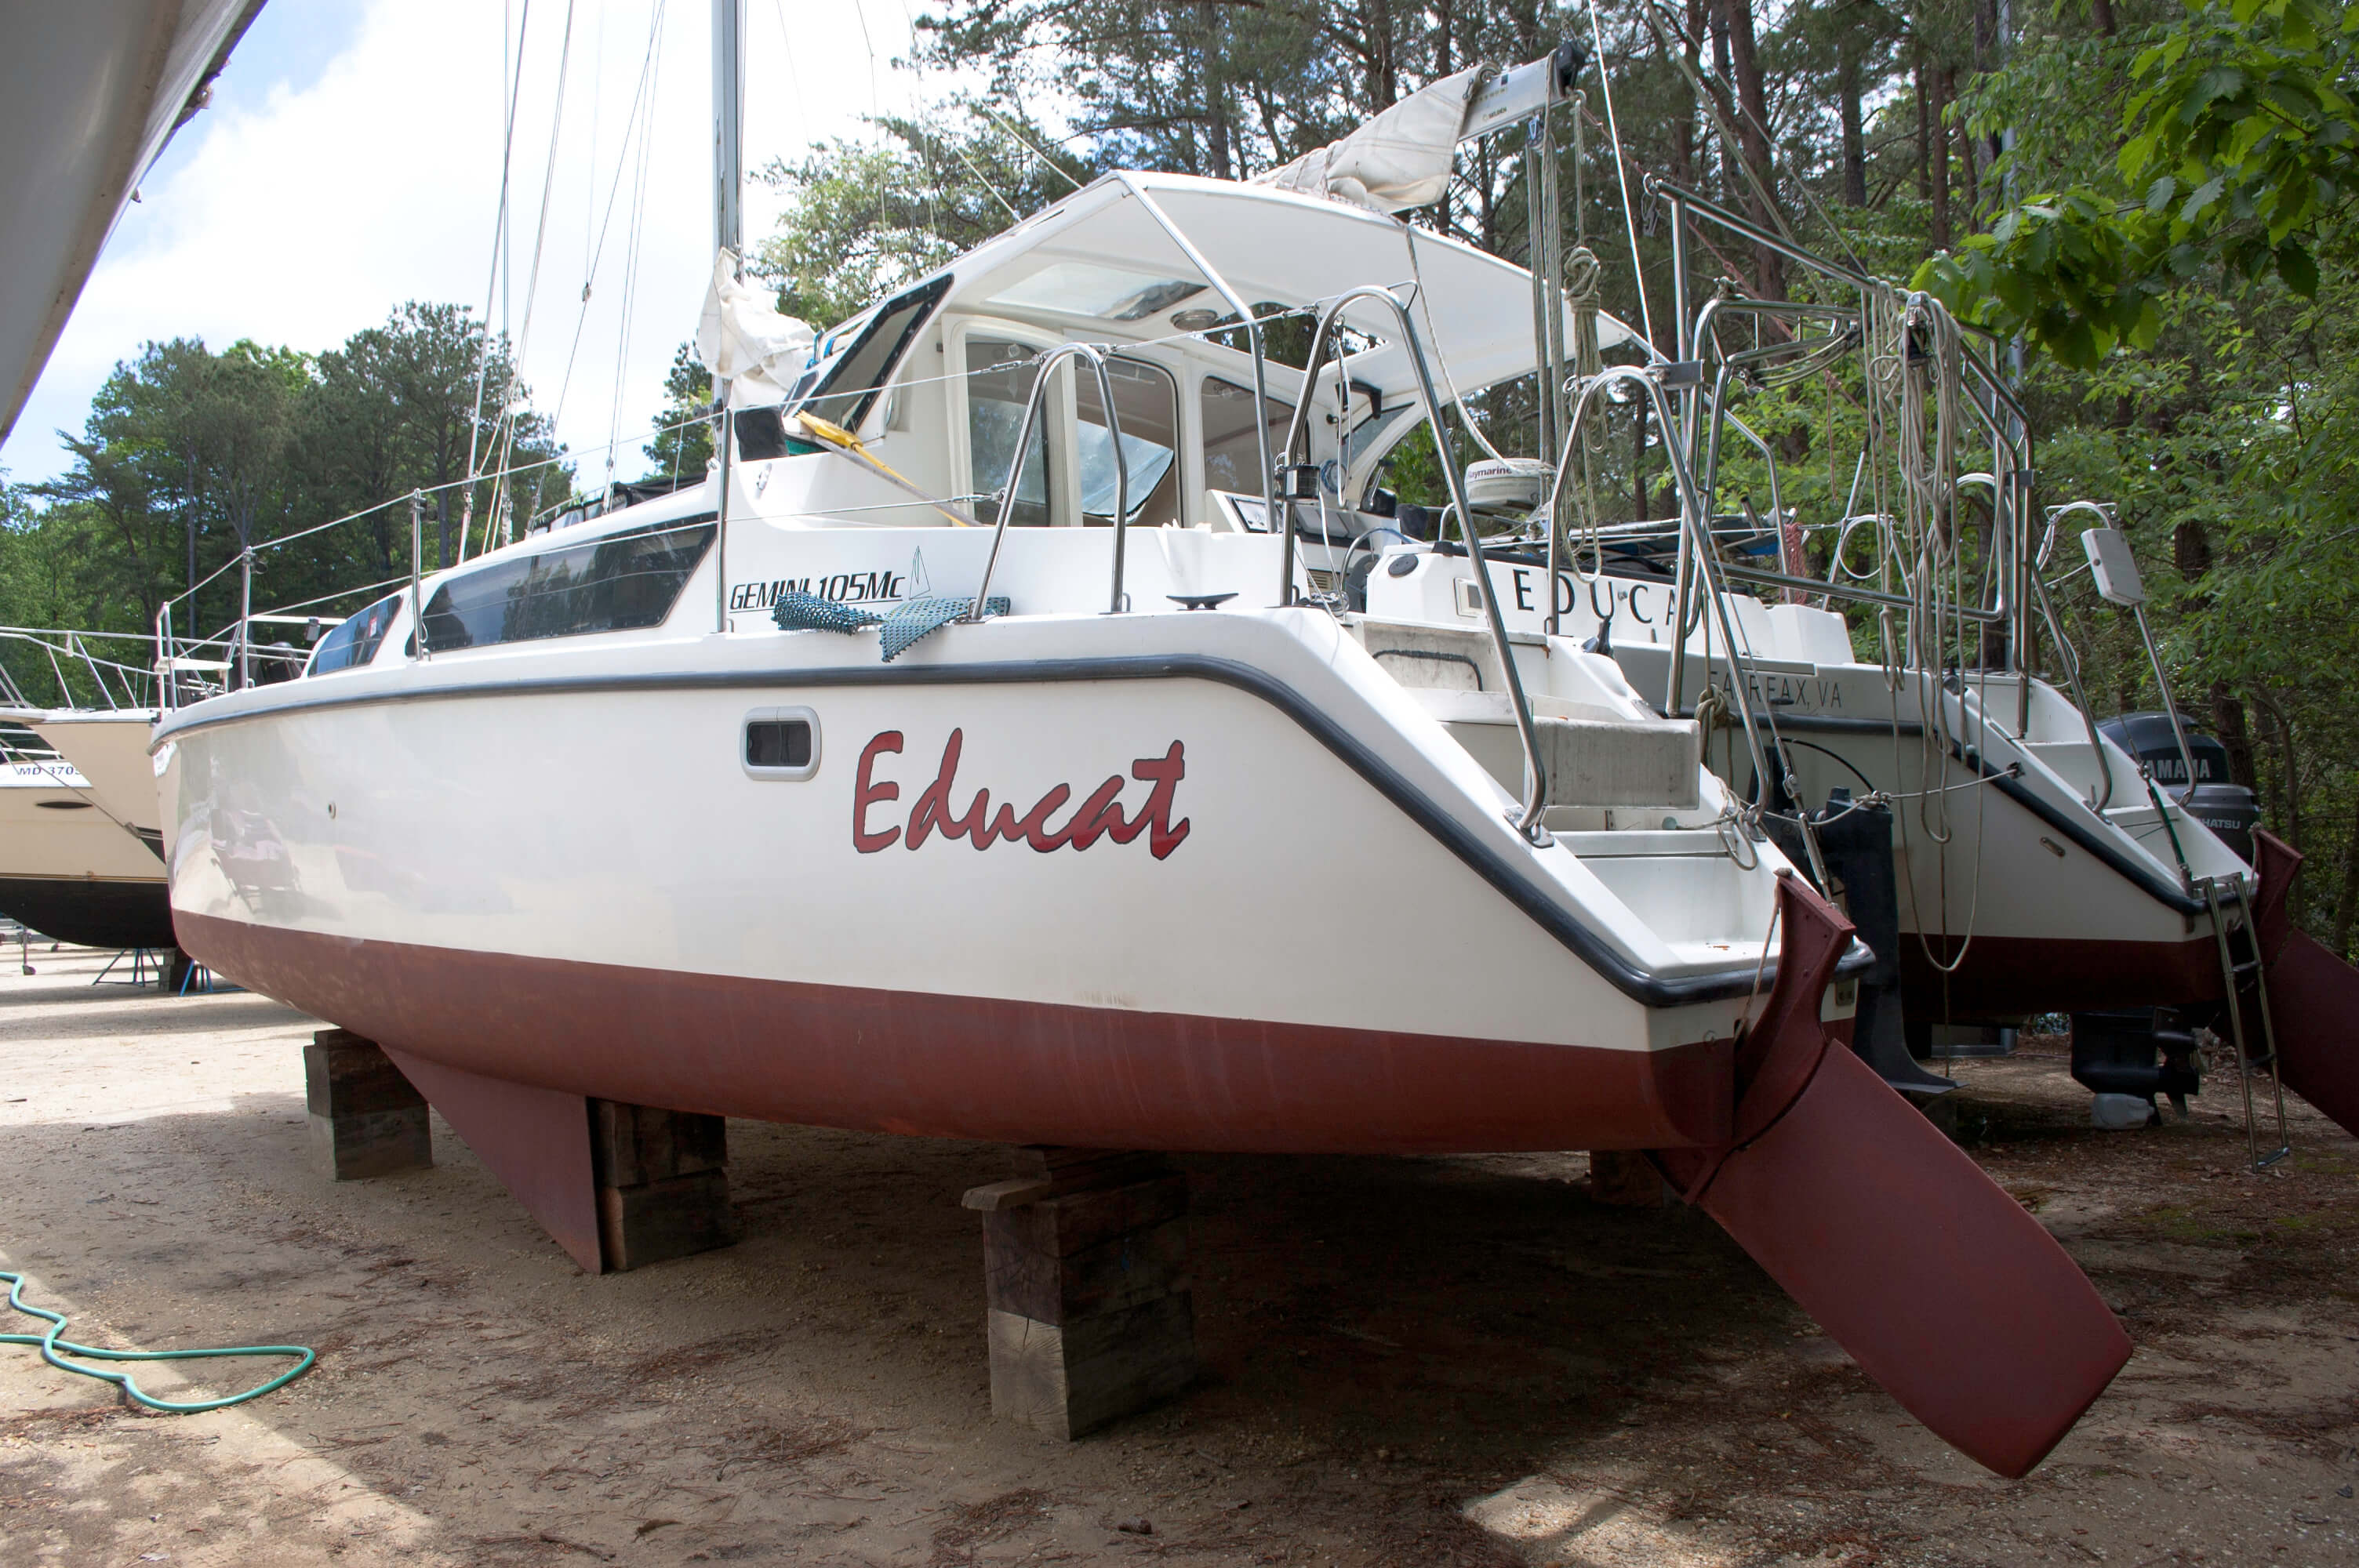 Latest Listings and Price Cuts this Week on Catamarans.com